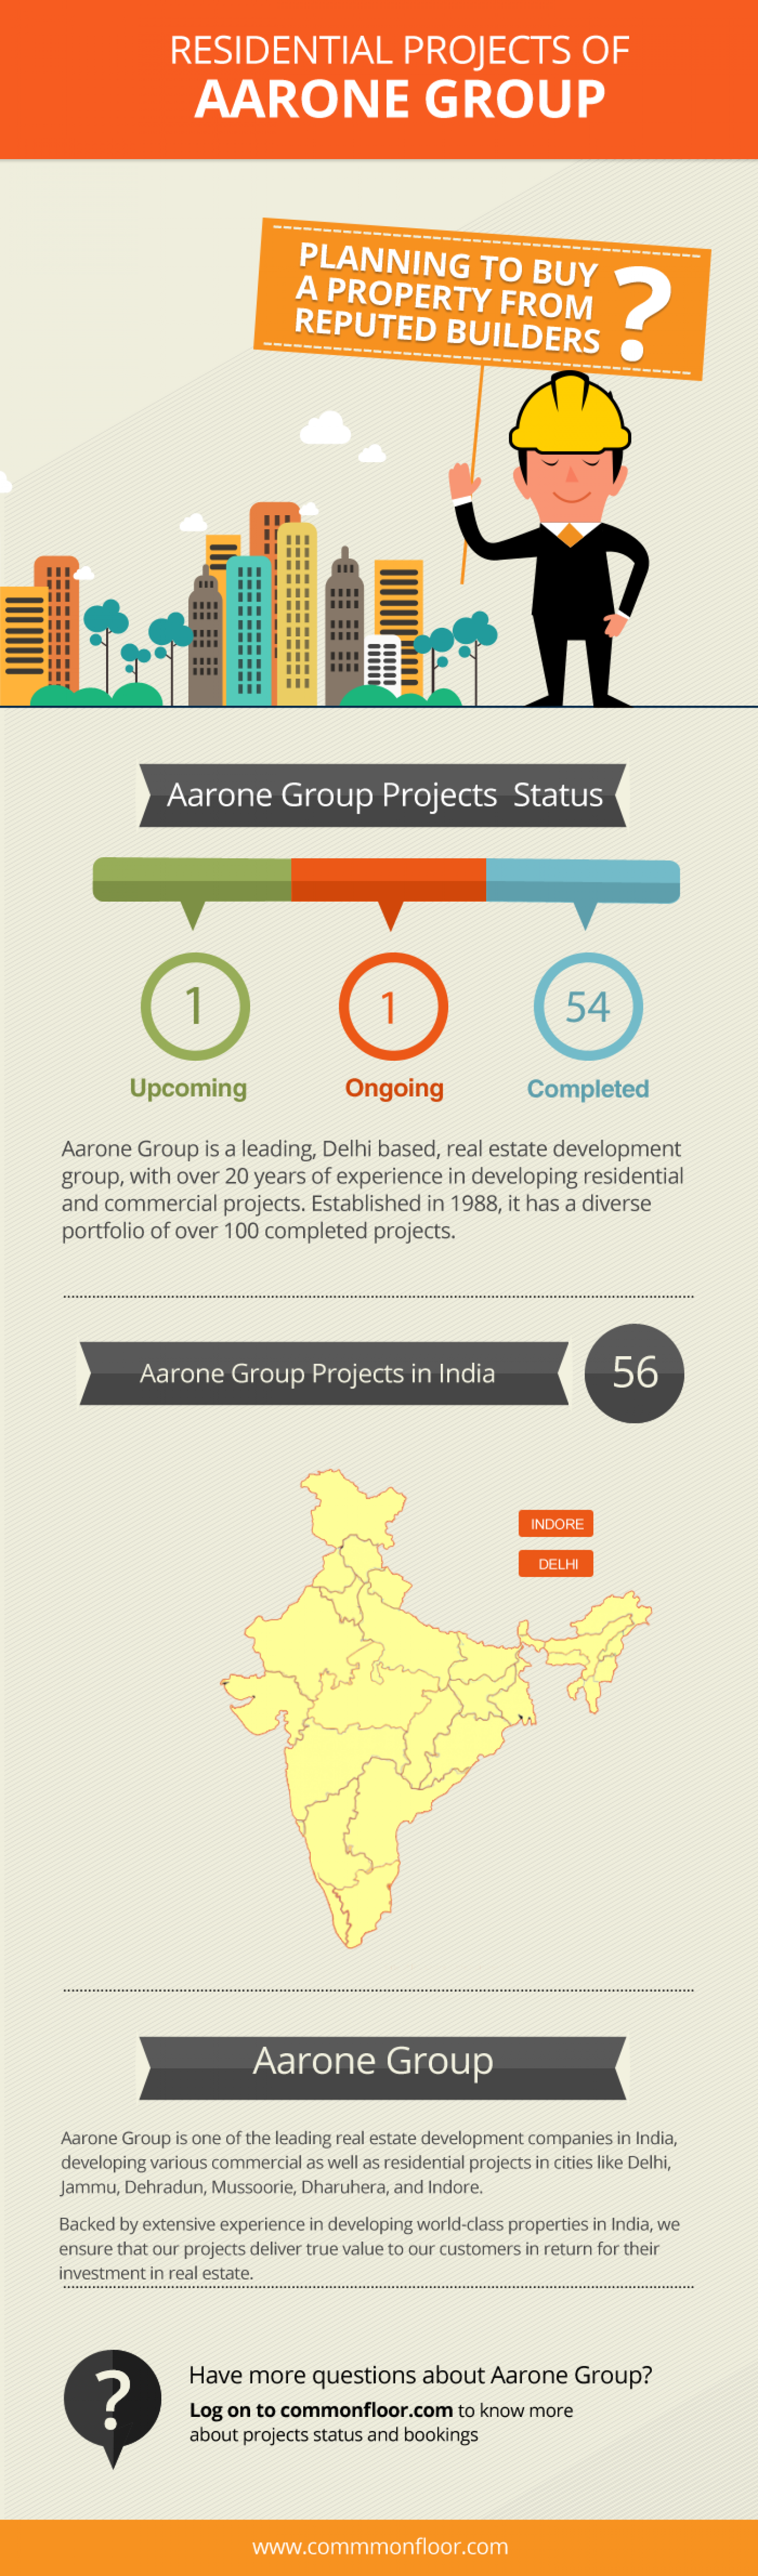 Residential Projects of Aarone Group Infographic